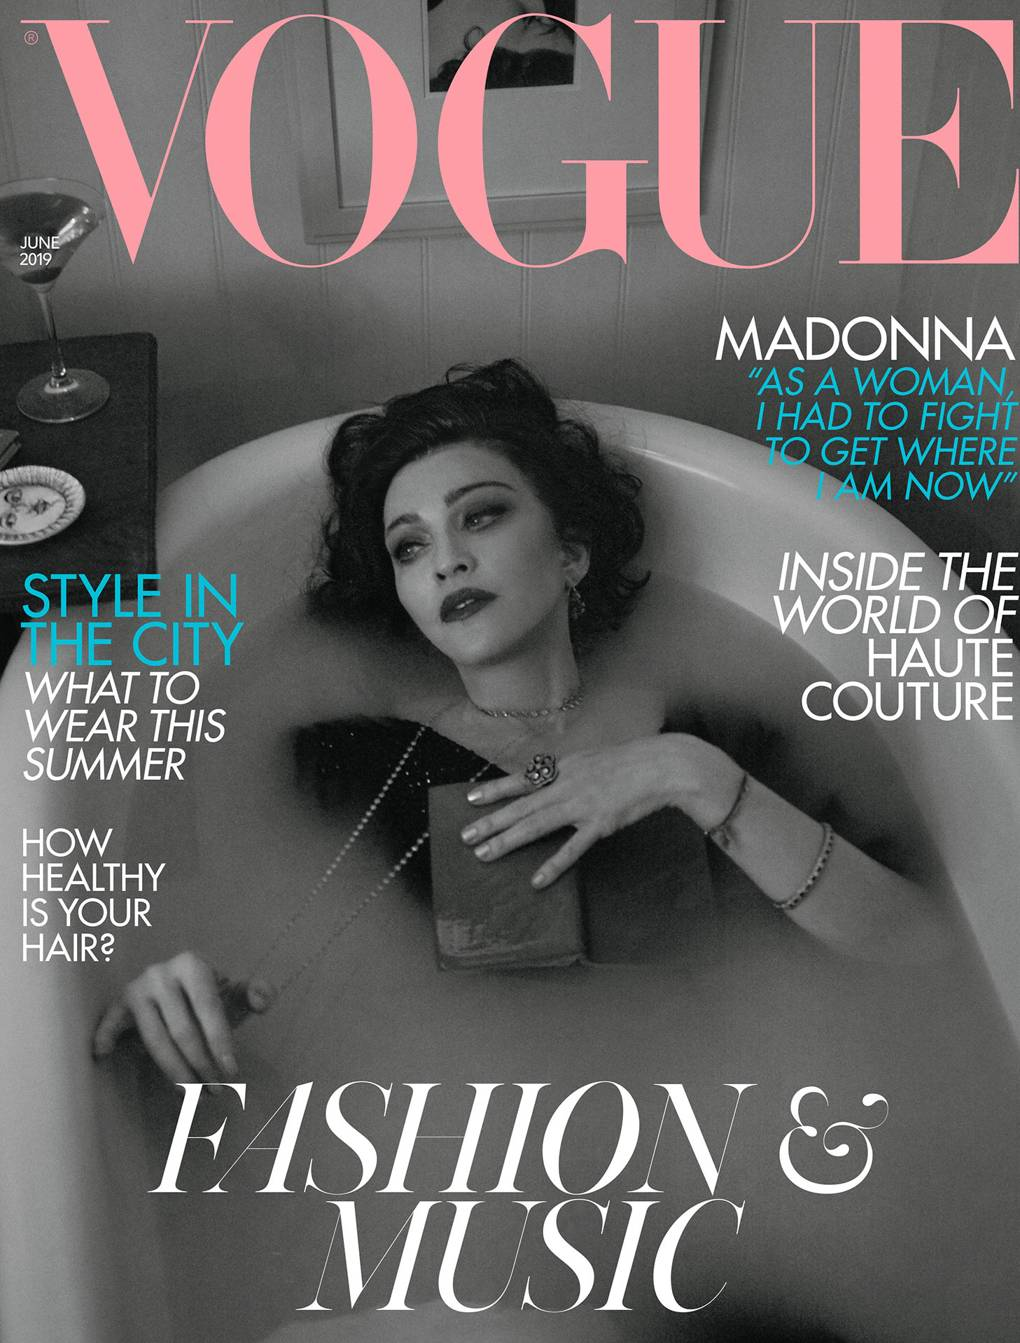 VOGUE-June-2019-Cover.jpg